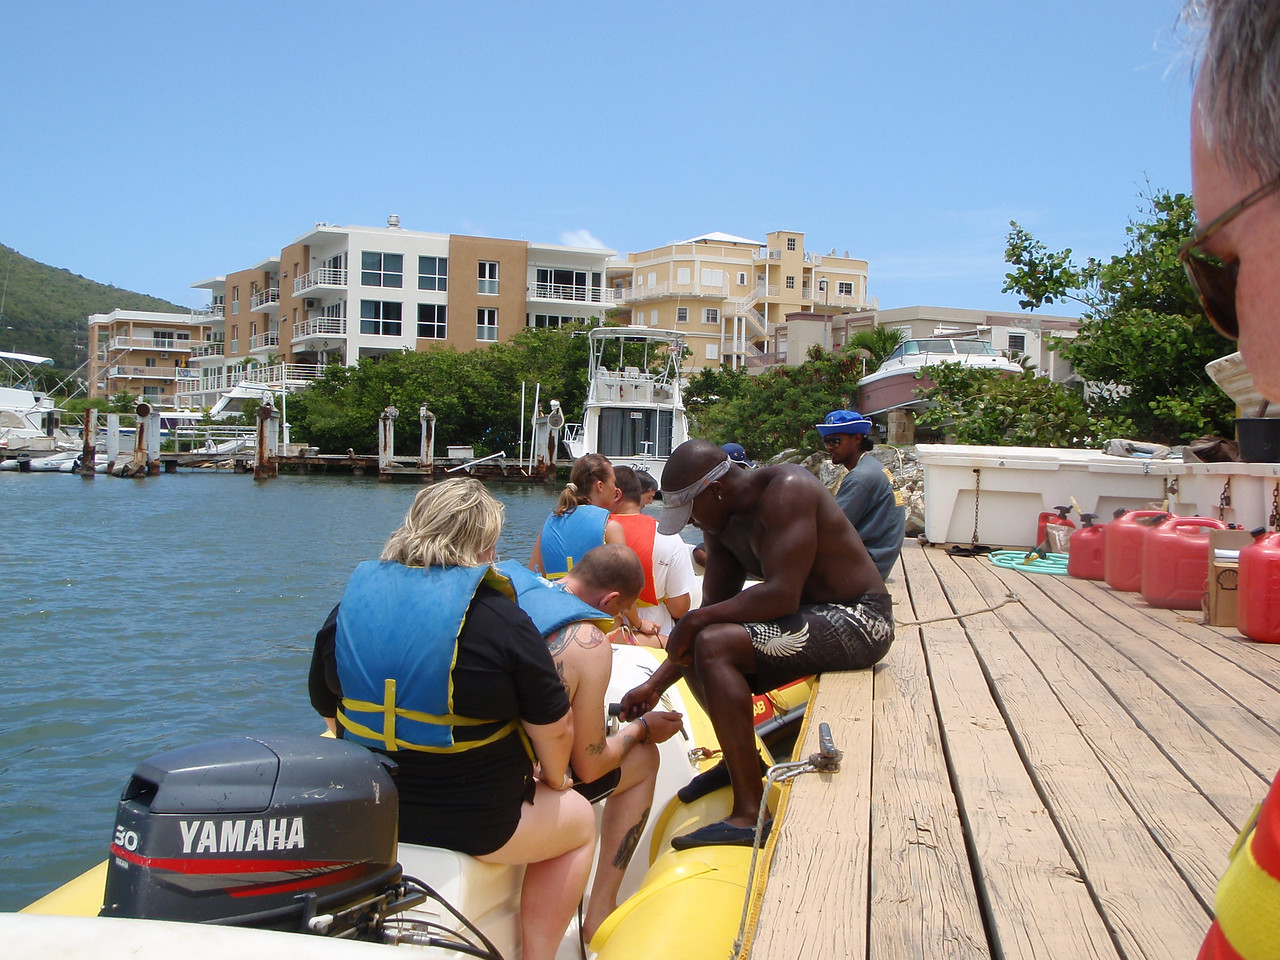 We booked the Rhino Rhider excursion.  Here one of the guides gets folks set up in their boats.